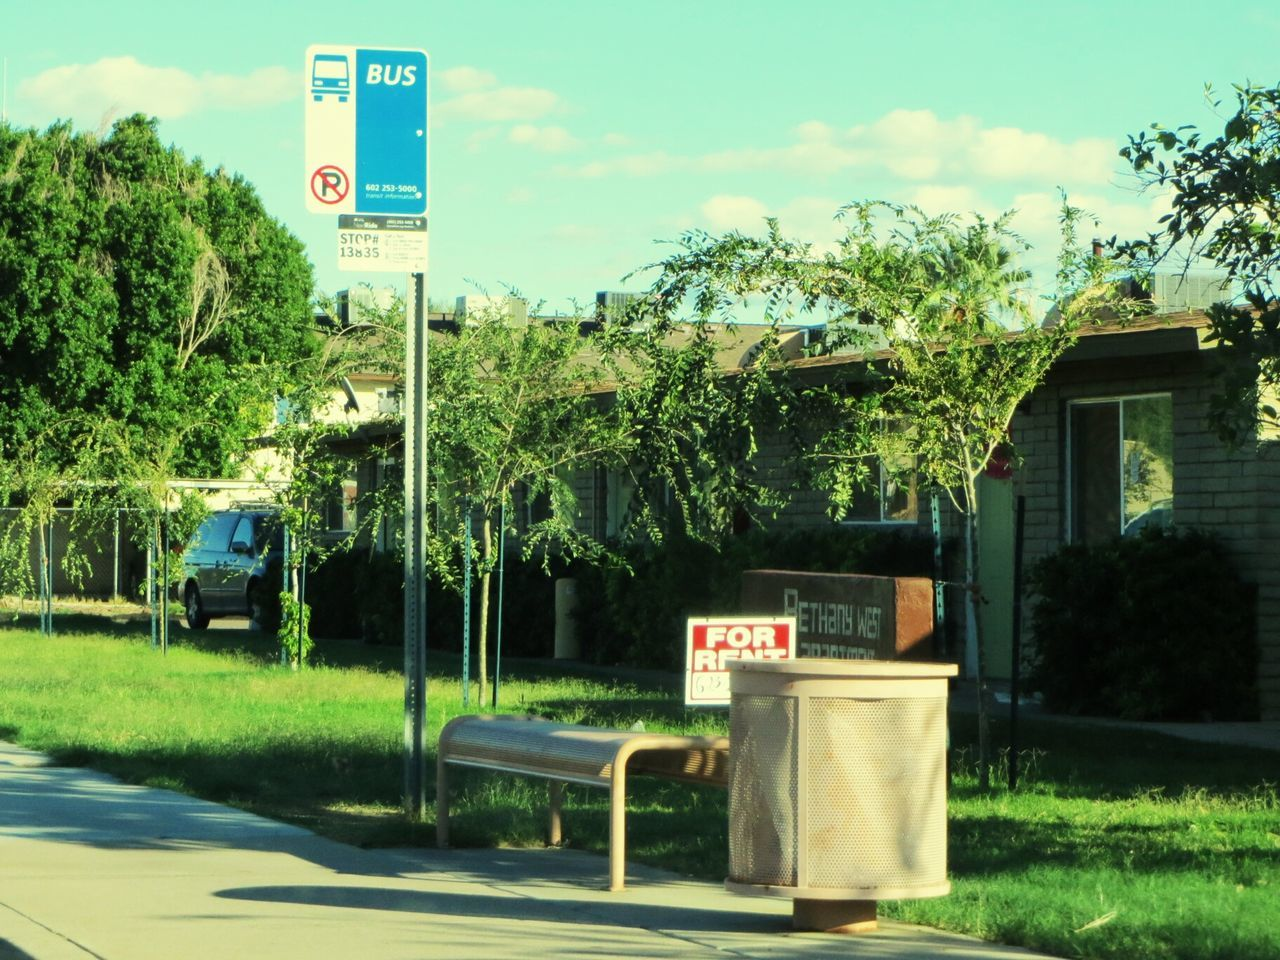 communication, text, tree, road, transportation, sky, road sign, growth, day, outdoors, no people, grass